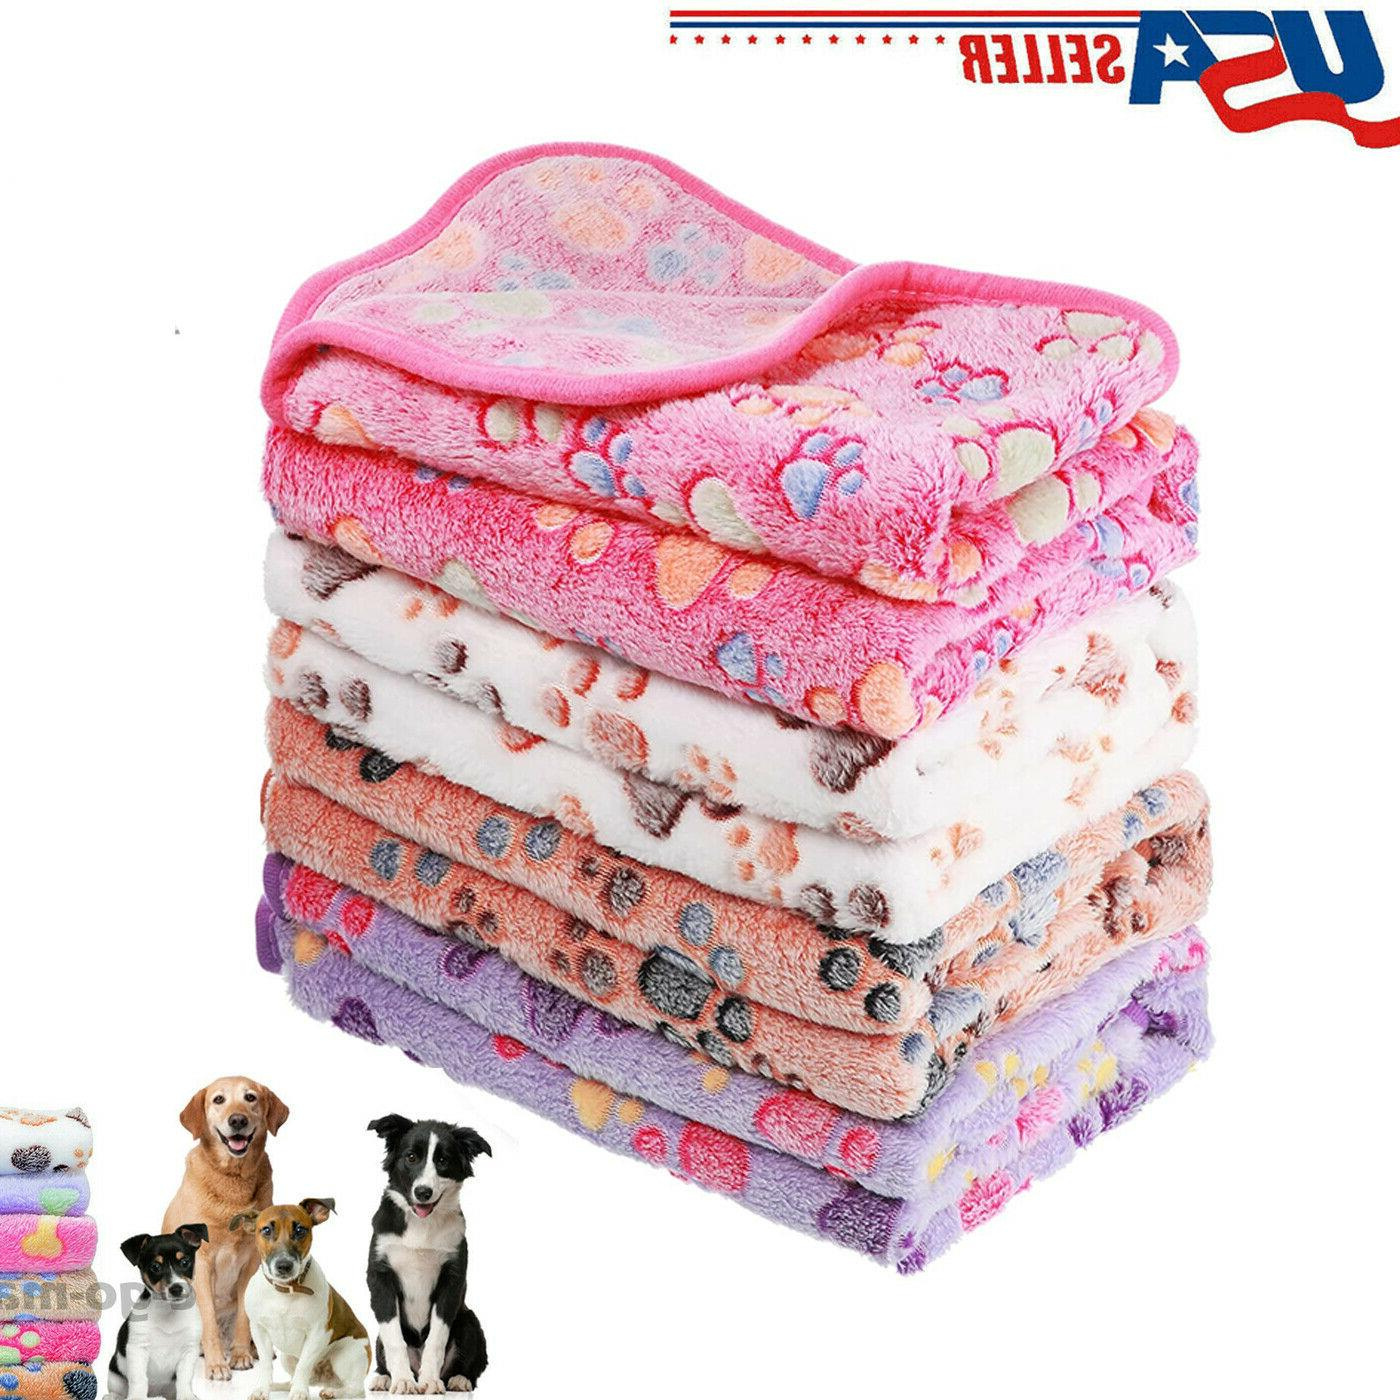 Soft Warm Fleece Lovely Design Paw Print Pet Blanket for Dog